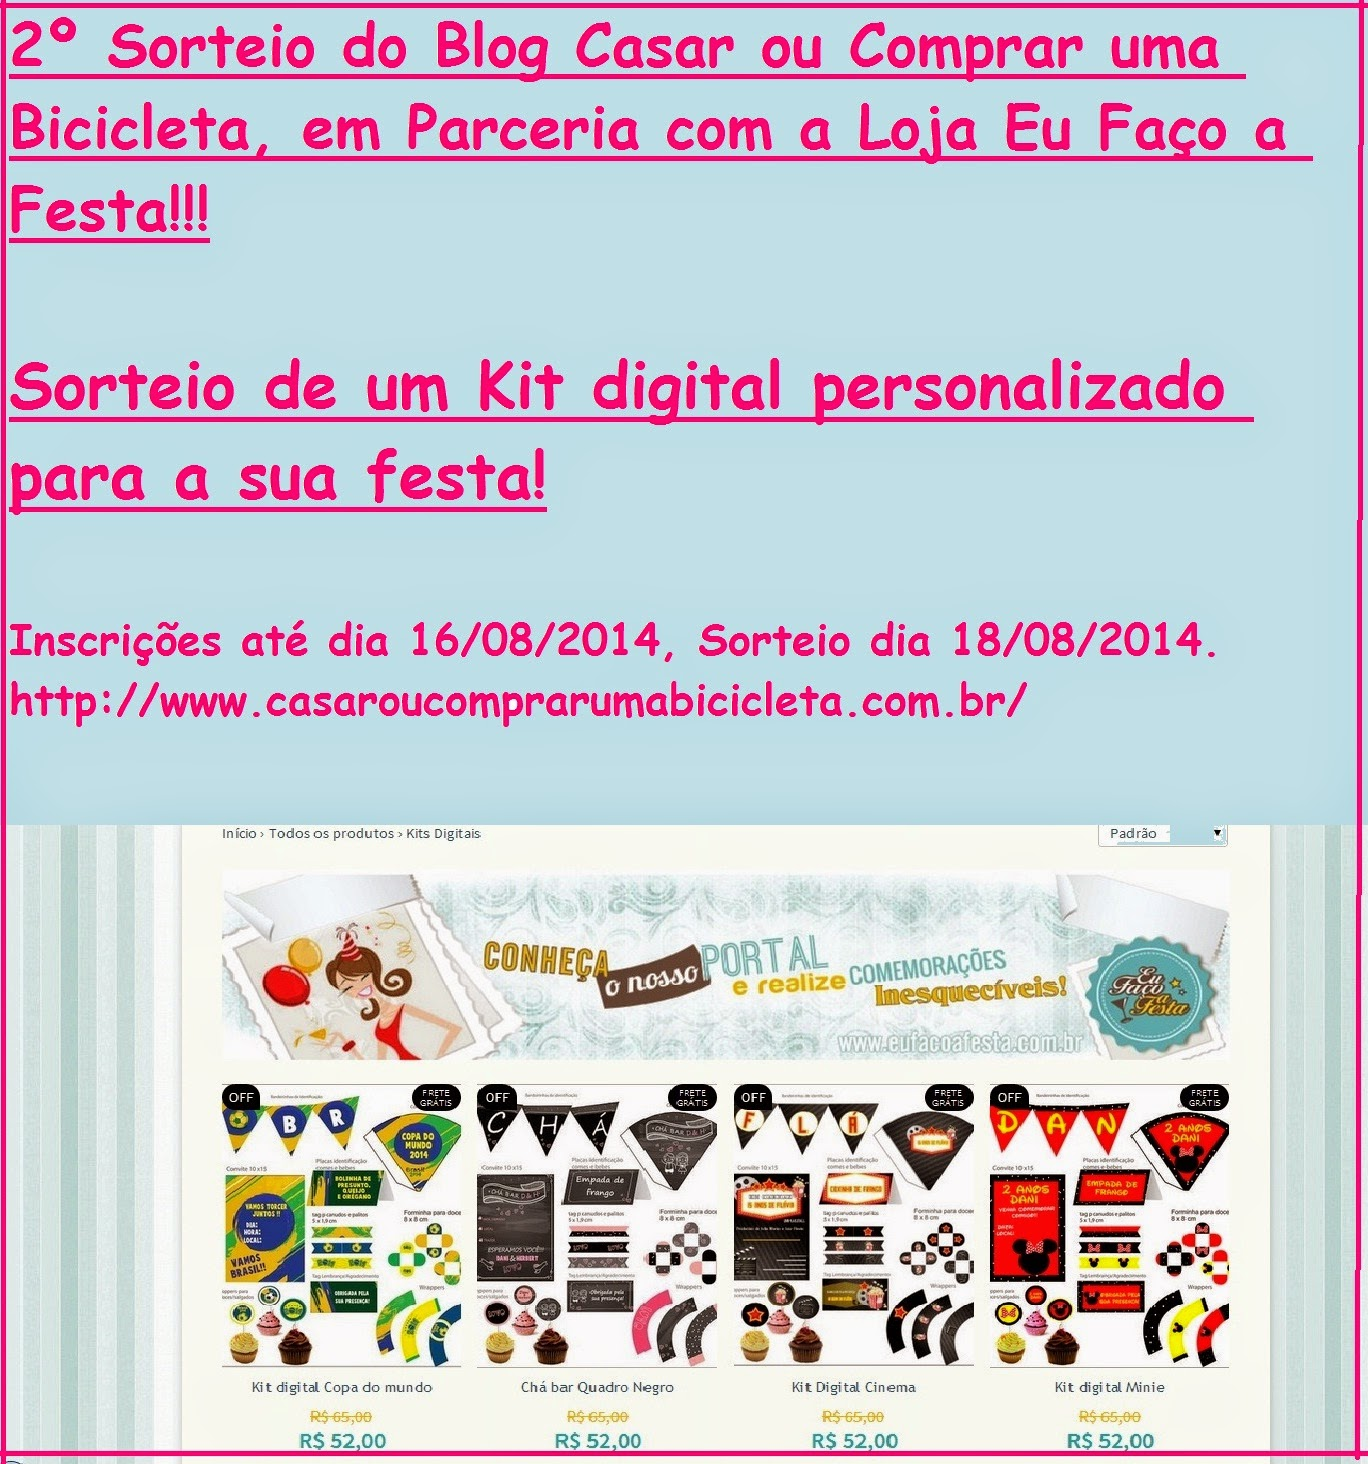 2º Sorteio do Blog!!!